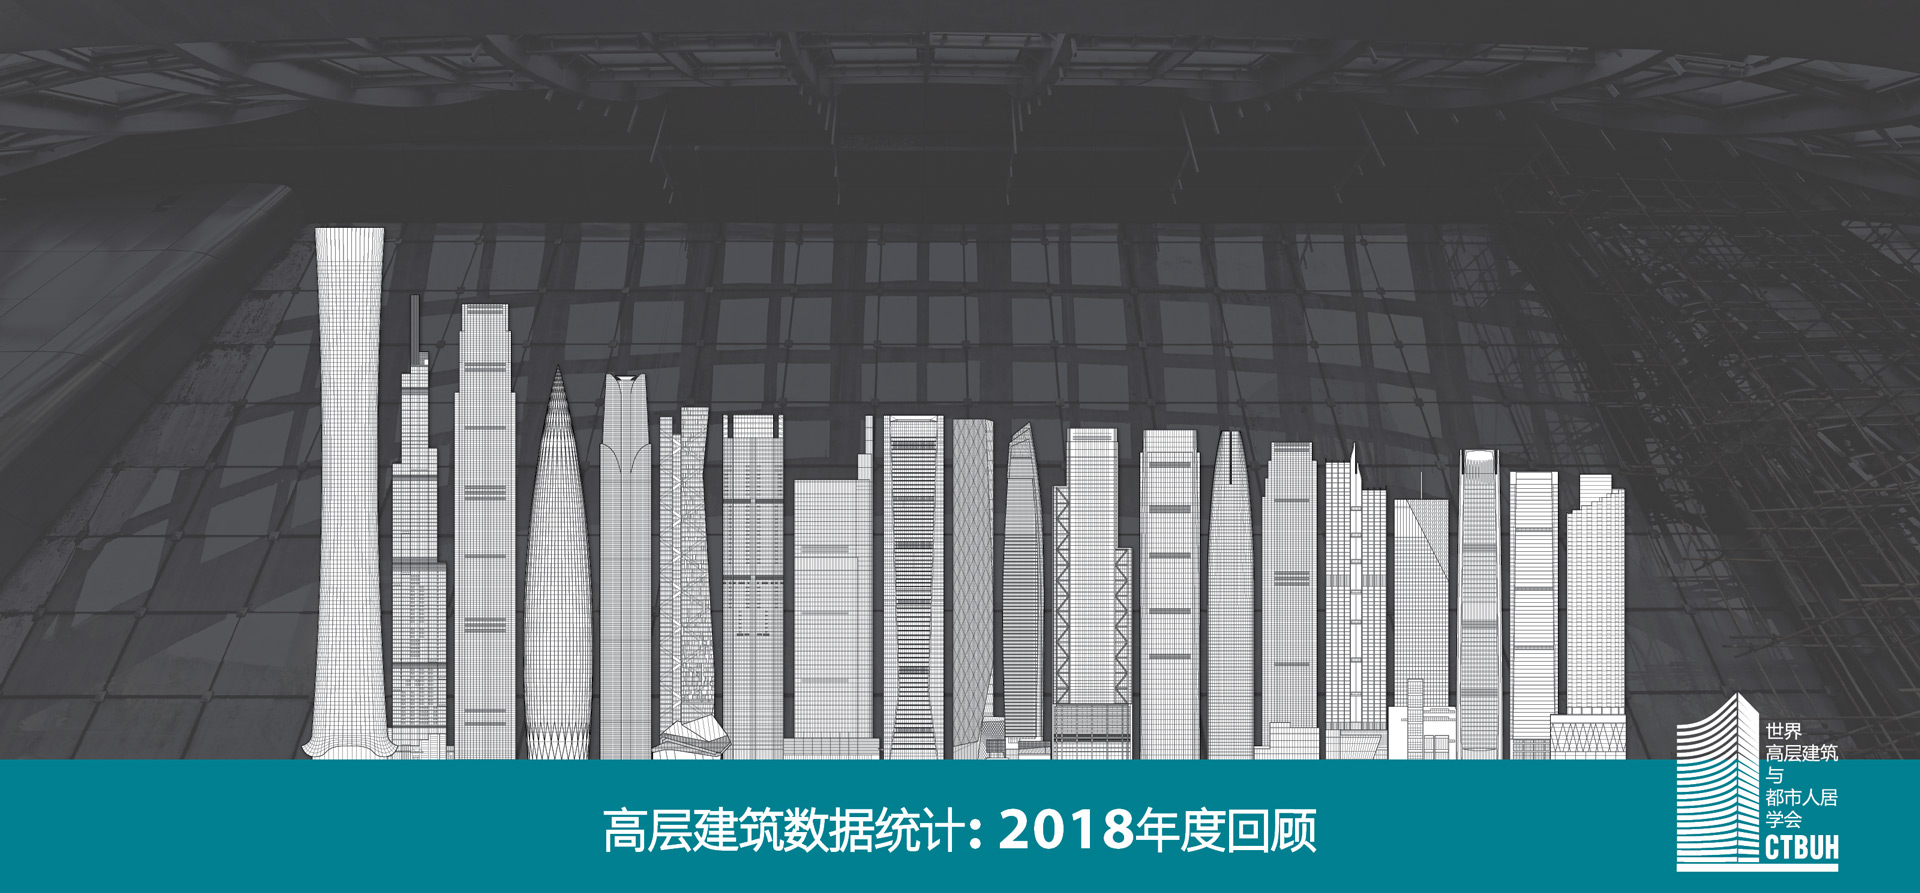 CTBUH 2018 Year in Review